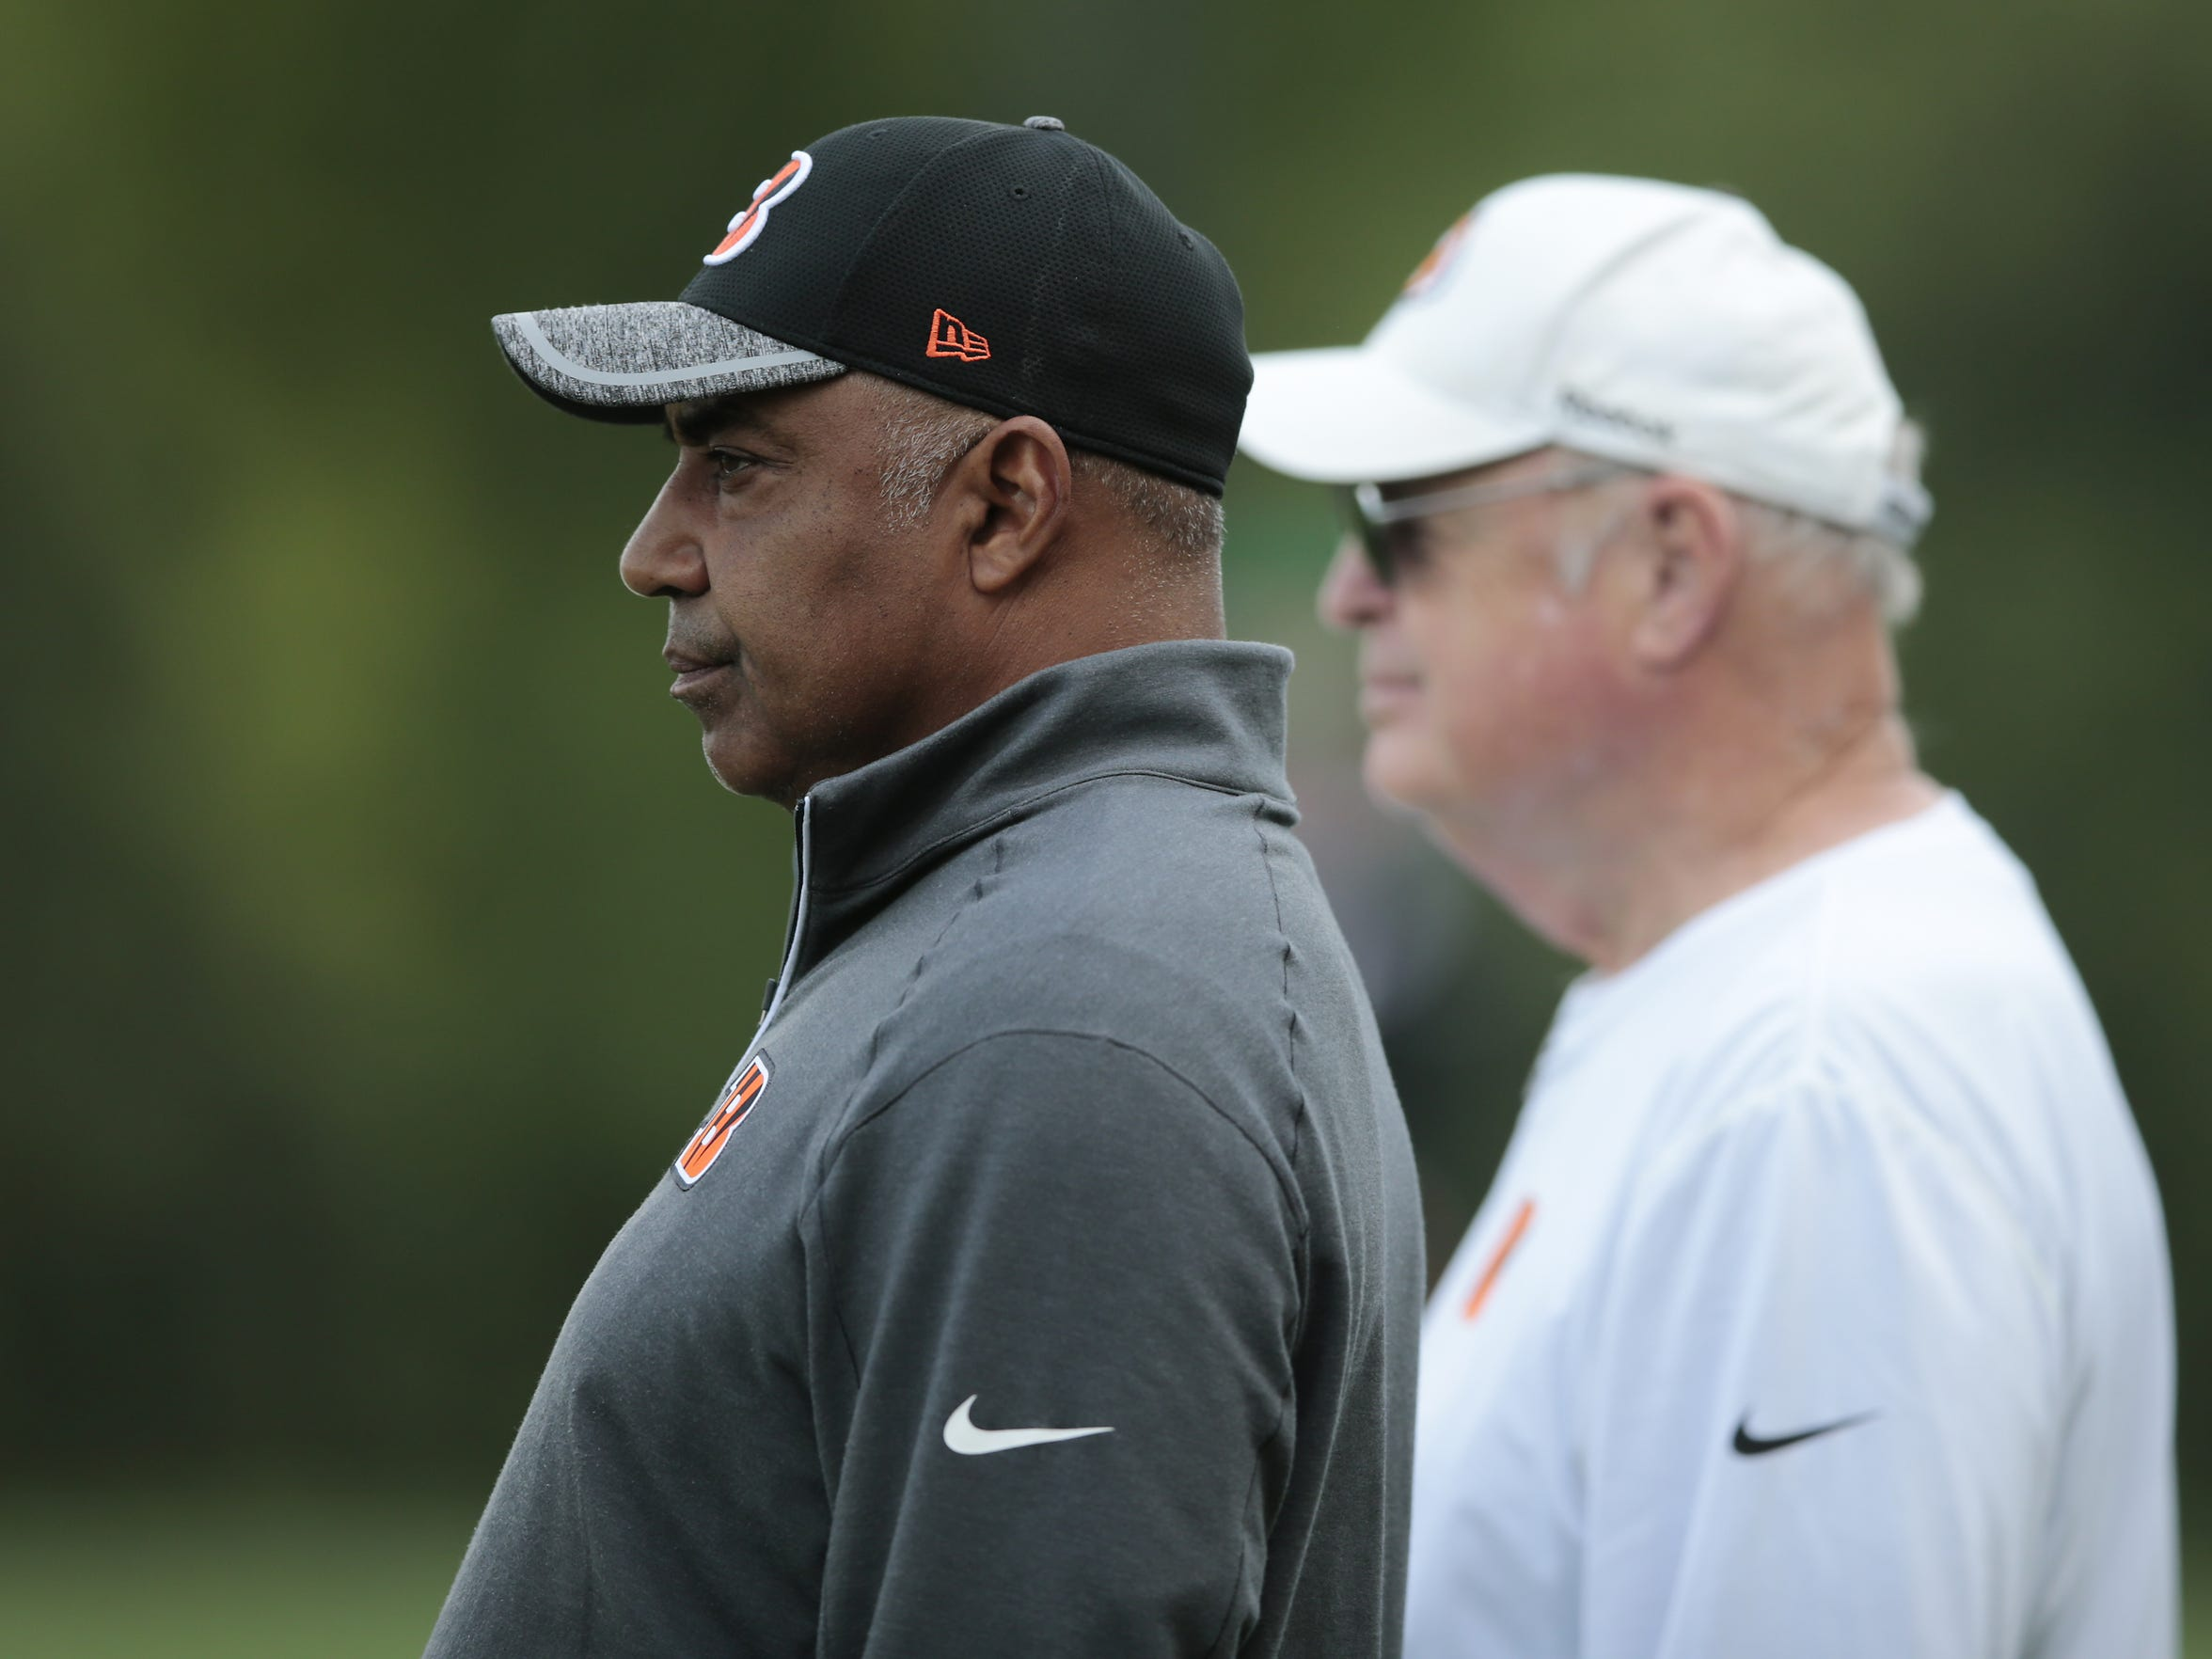 Cincinnati Bengals head coach Marvin Lewis, left, and team president Mike Brown, right, look on during Cincinnati Bengals rookie mini camp, Friday, May 6, 2016, on the practice fields adjacent to Paul Brown Stadium in Cincinnati.